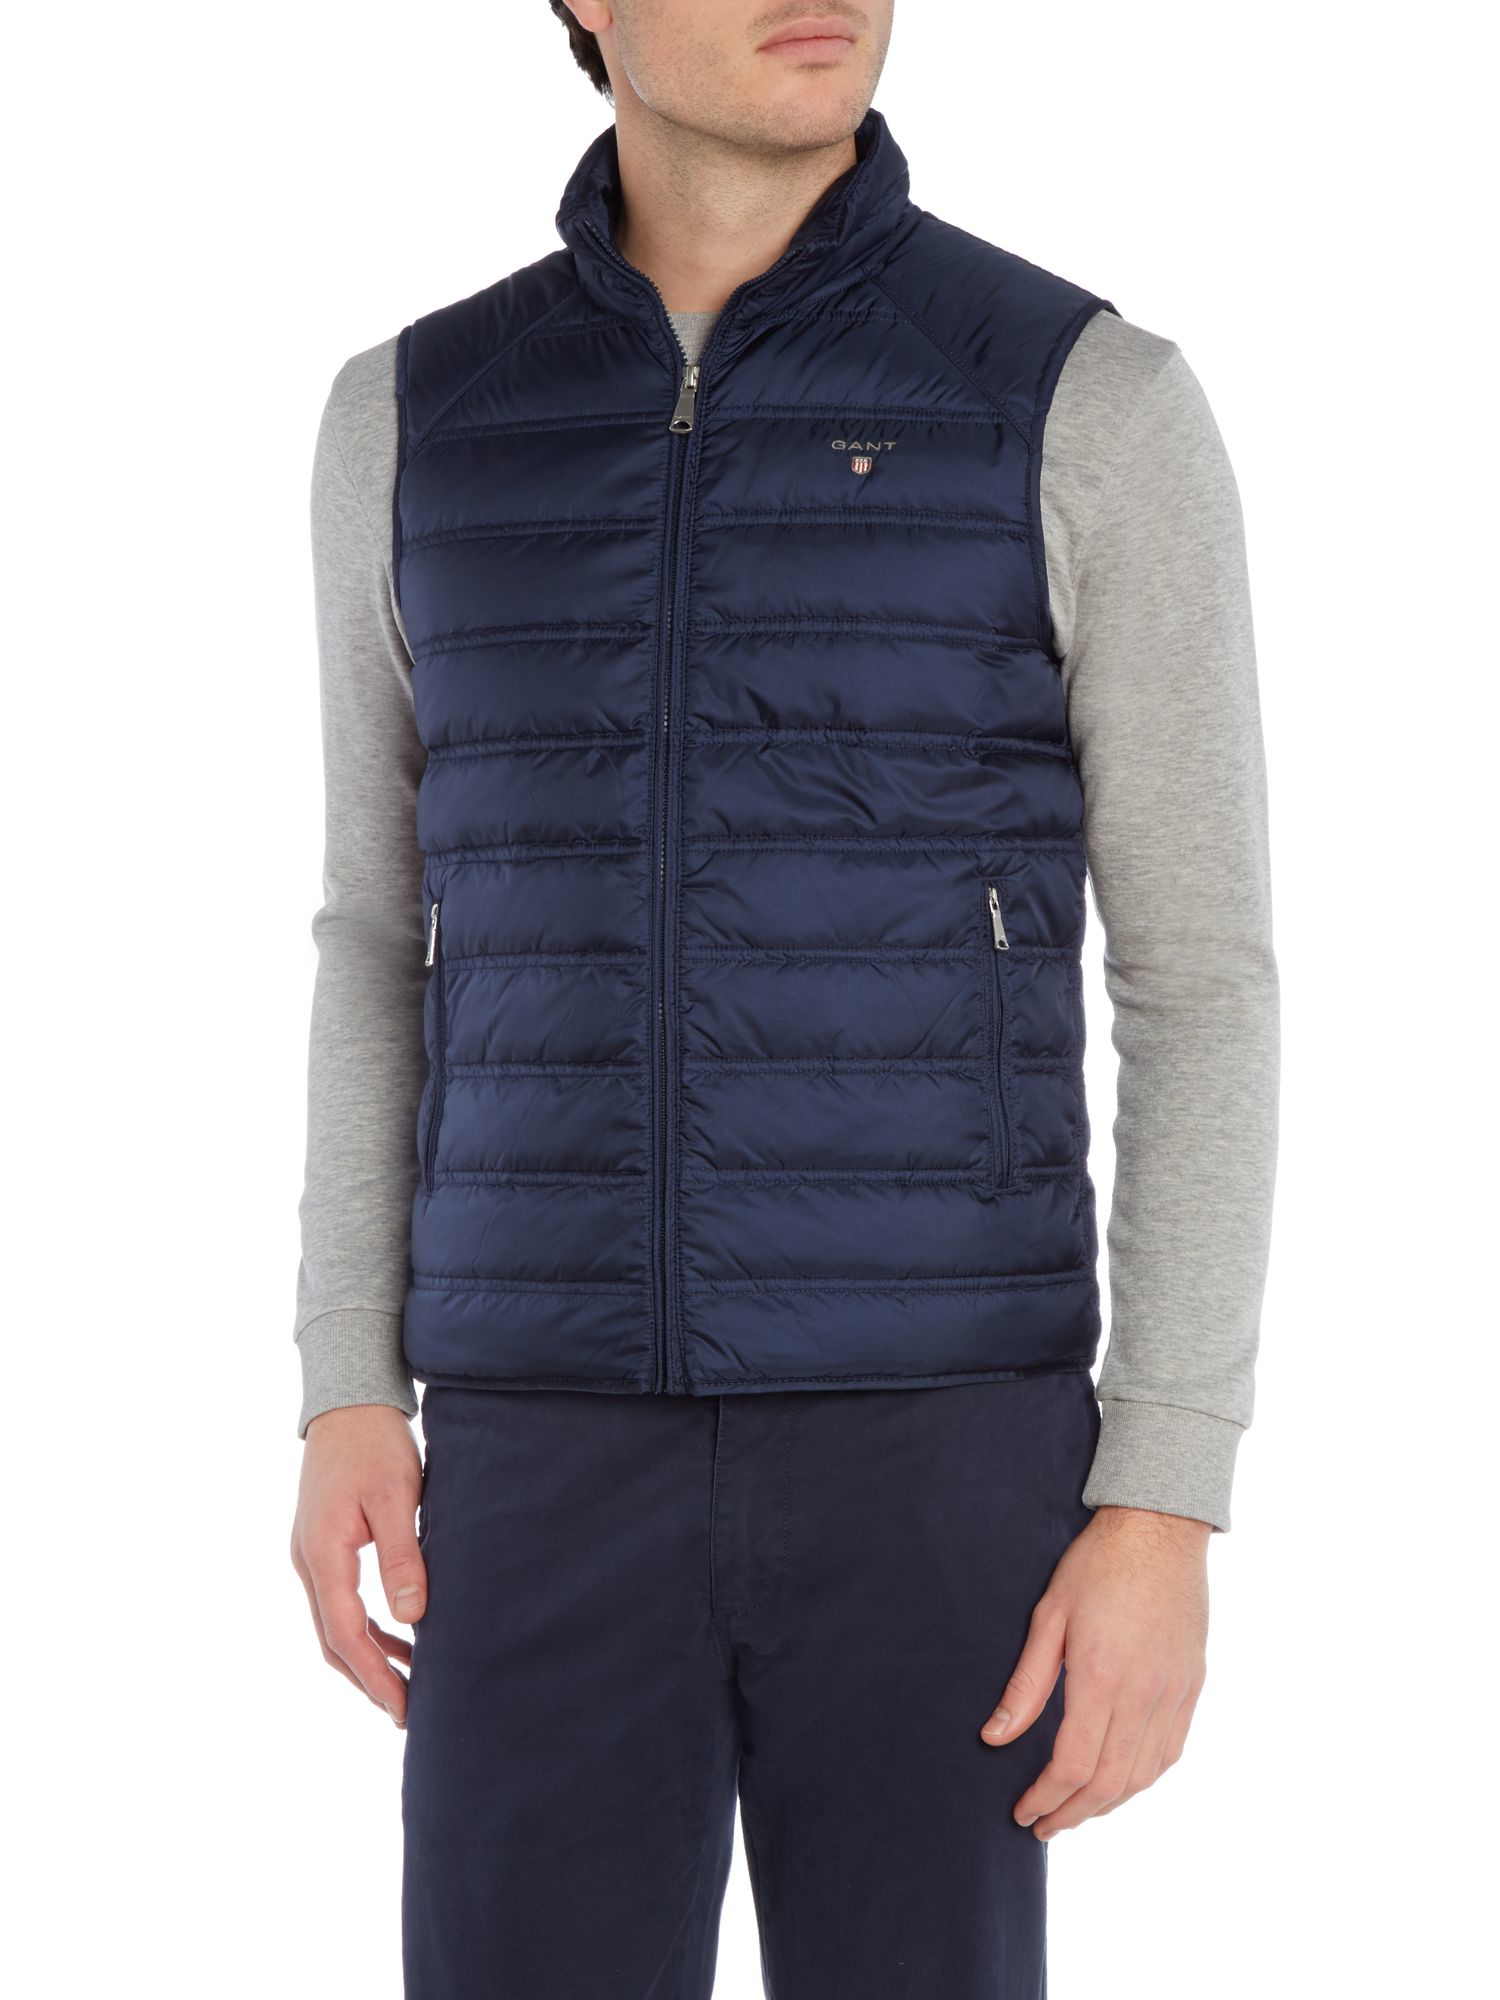 Sale Buy Man Gilet Gant - L GANT Cheap Sale Many Kinds Of Clearance Best Place Footlocker Pictures Cheap Price VPIrQ5ko